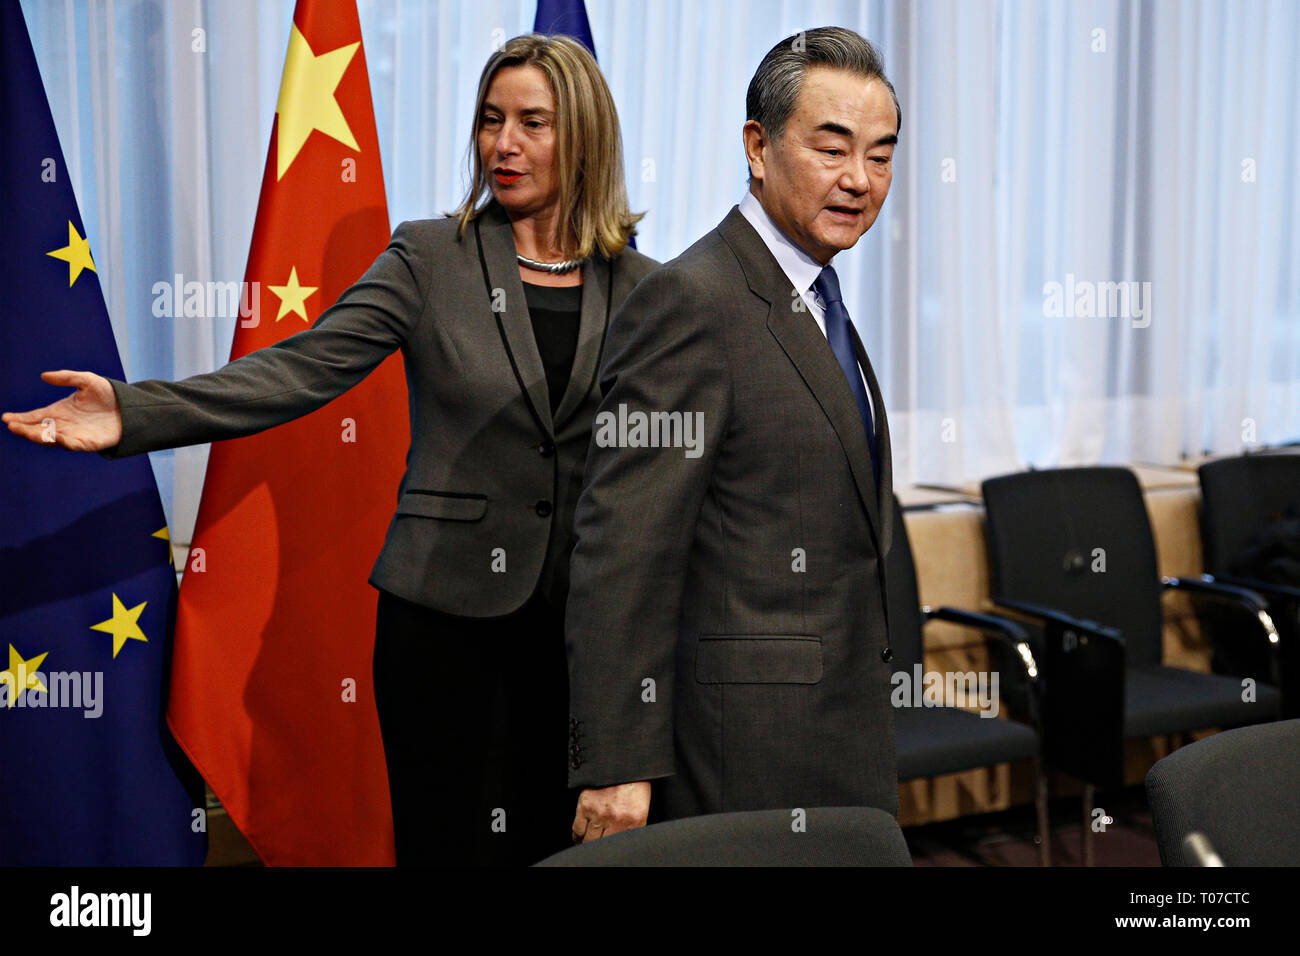 Brussels, Belgium. 18th March, 2019. Chinese Minister of Foreign Affairs WANG Yi and  EU Commissioner Federica MOGHERINI ahead of a meeting on EU-China High-Level Strategic Dialogue. Alexandros Michailidis/Alamy Live News - Stock Image